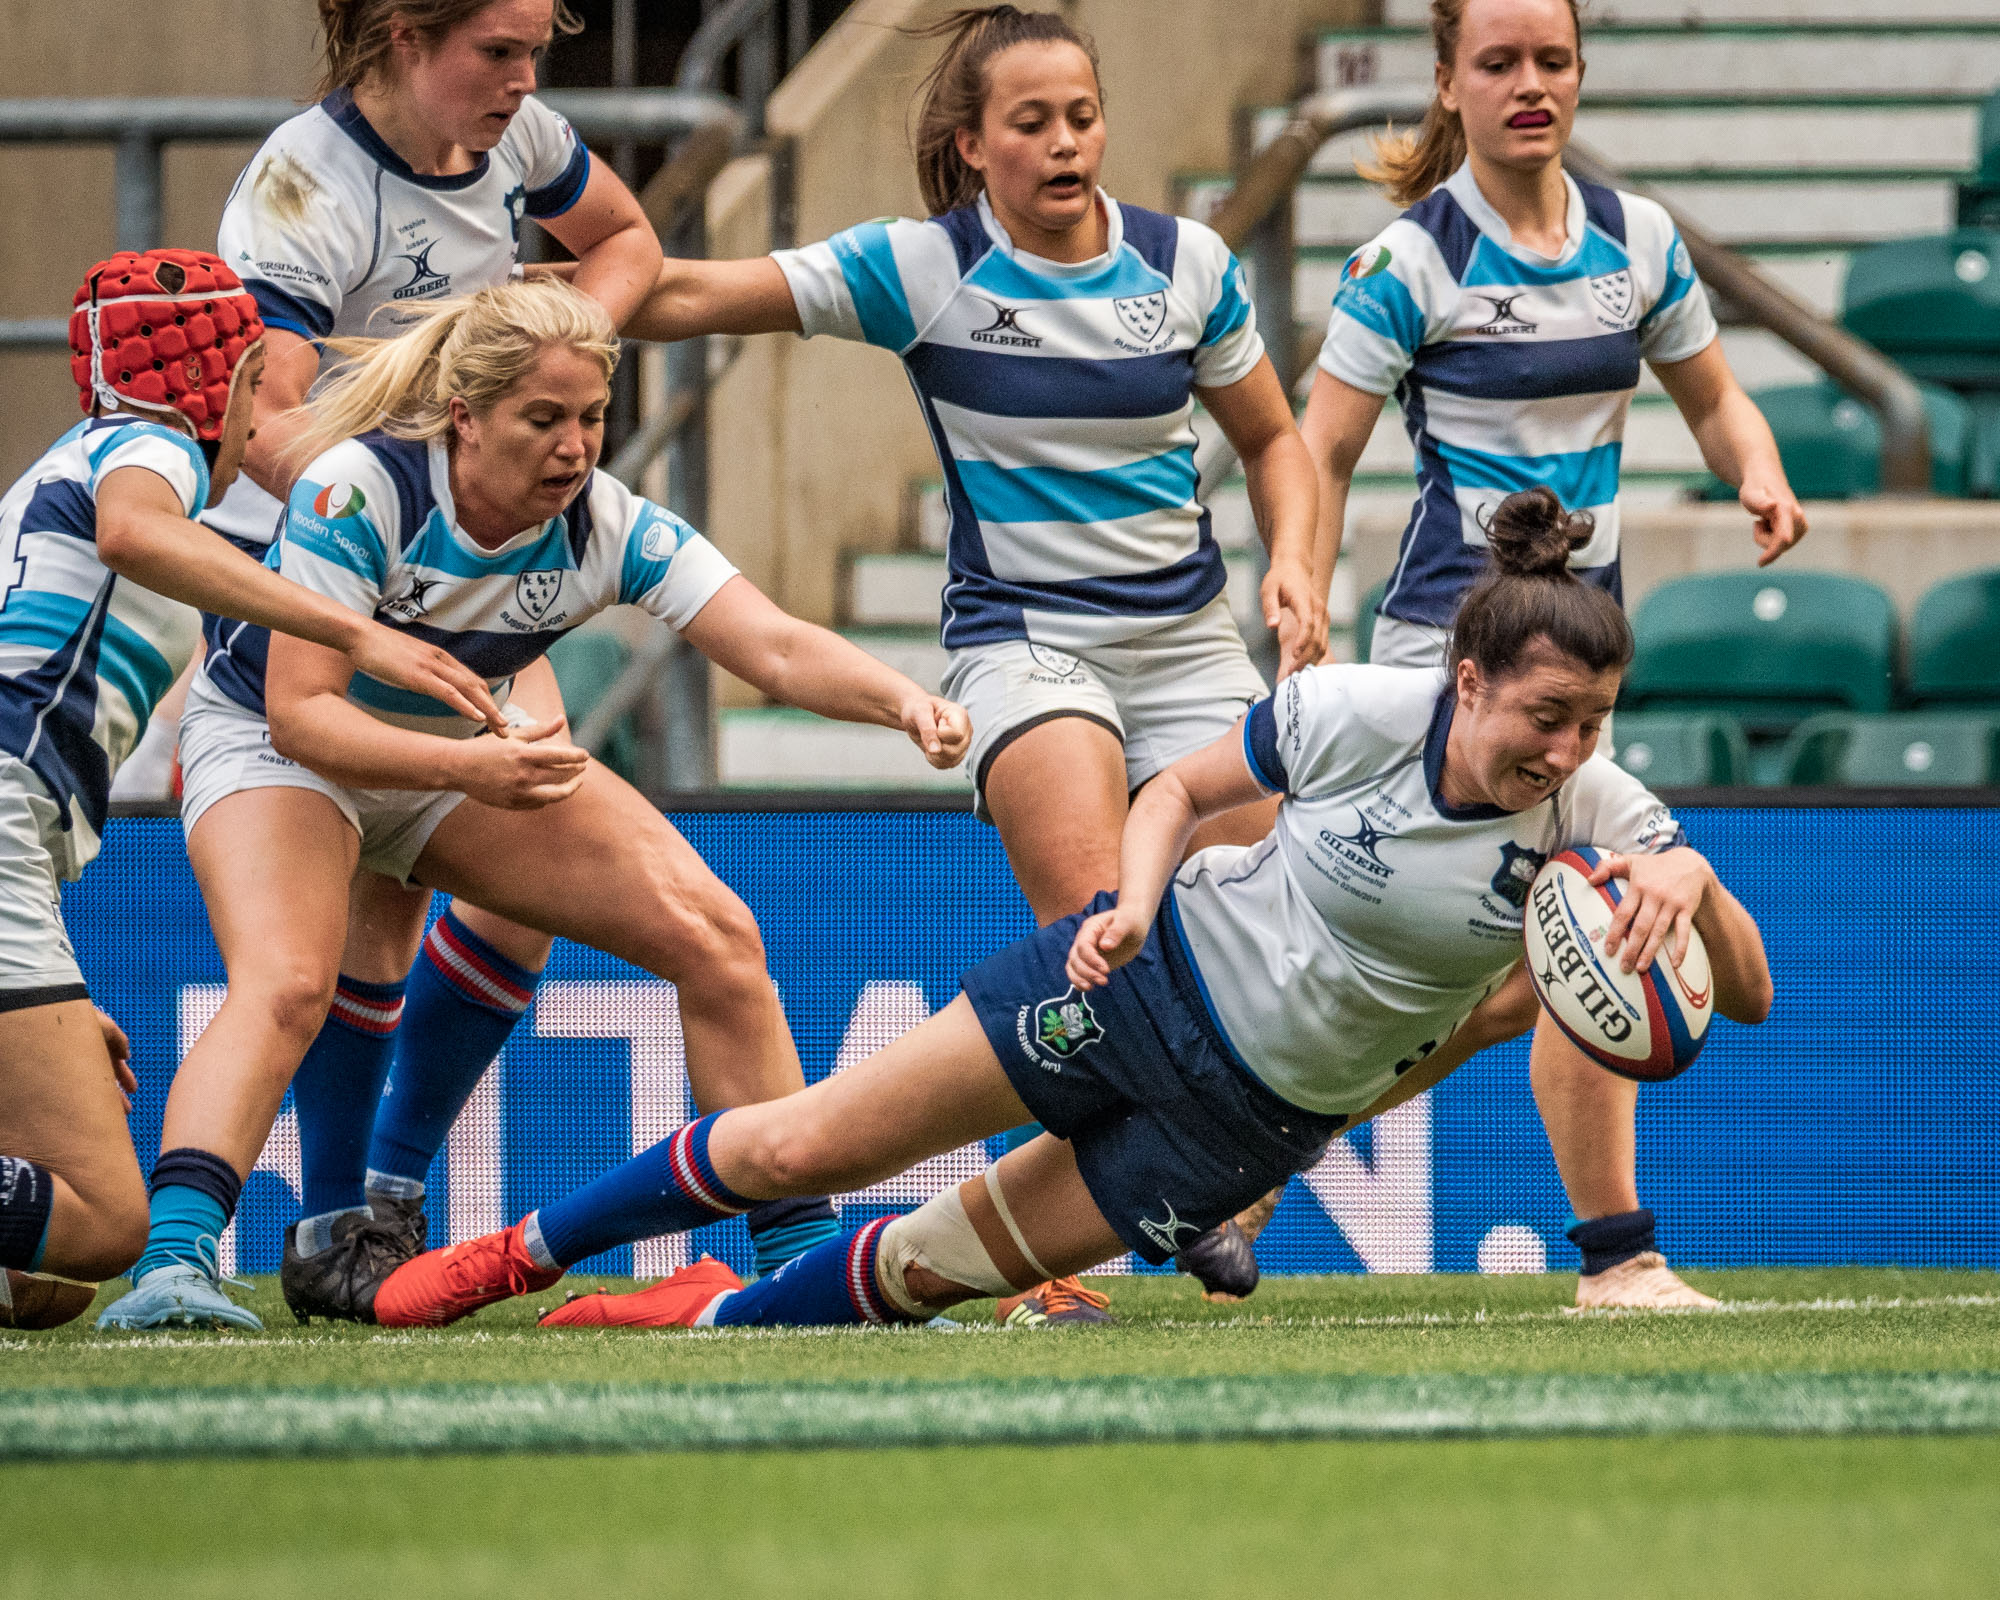 I had a poor view of Yorkshire's opening try but here's scrum half, Jessica Roberts, scoring their second